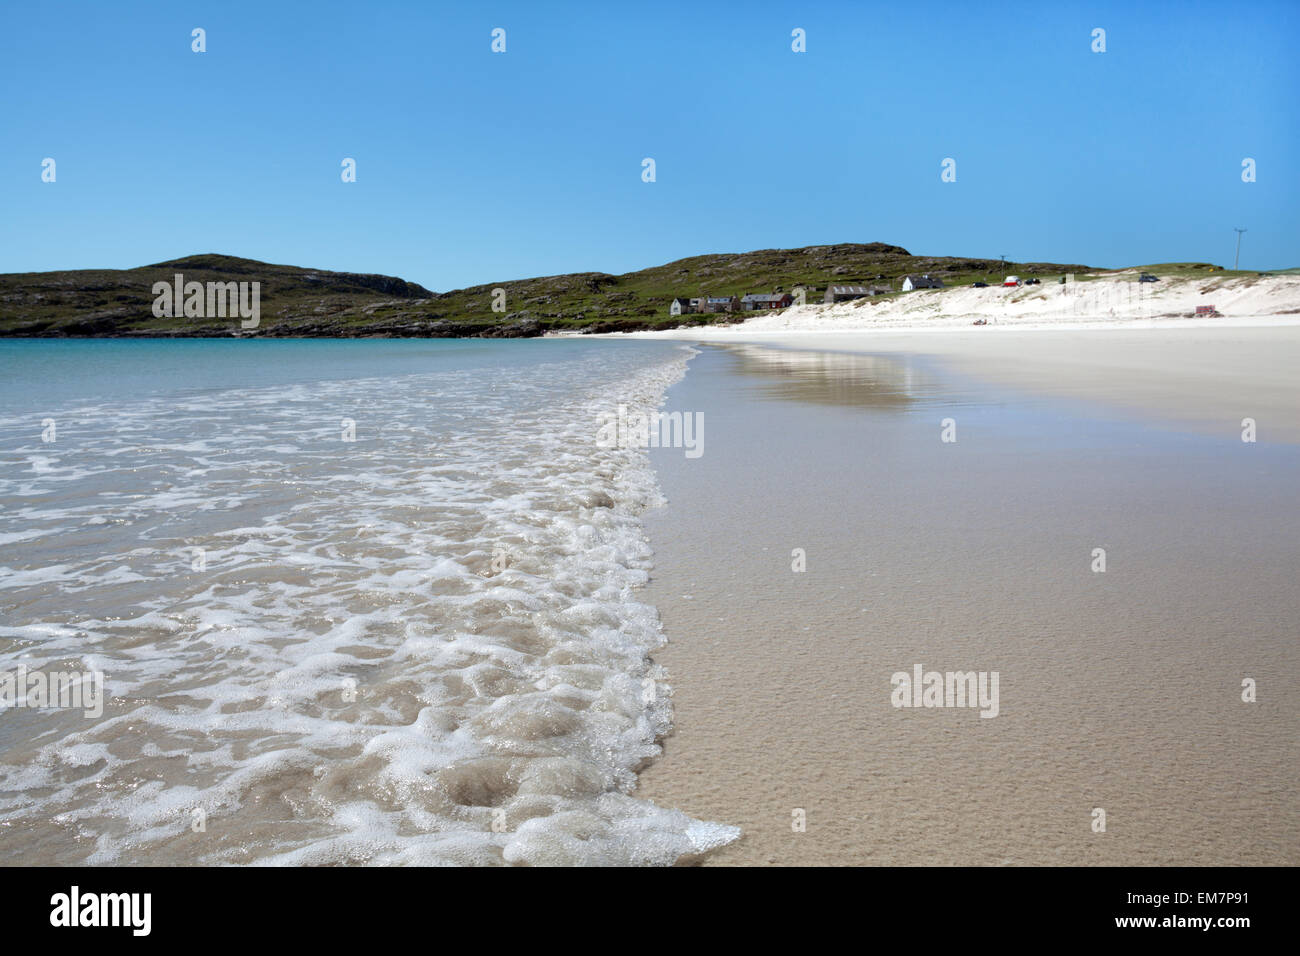 Sandy beach on the isle of Harris, Outer Hebrides, Scotland - Stock Image